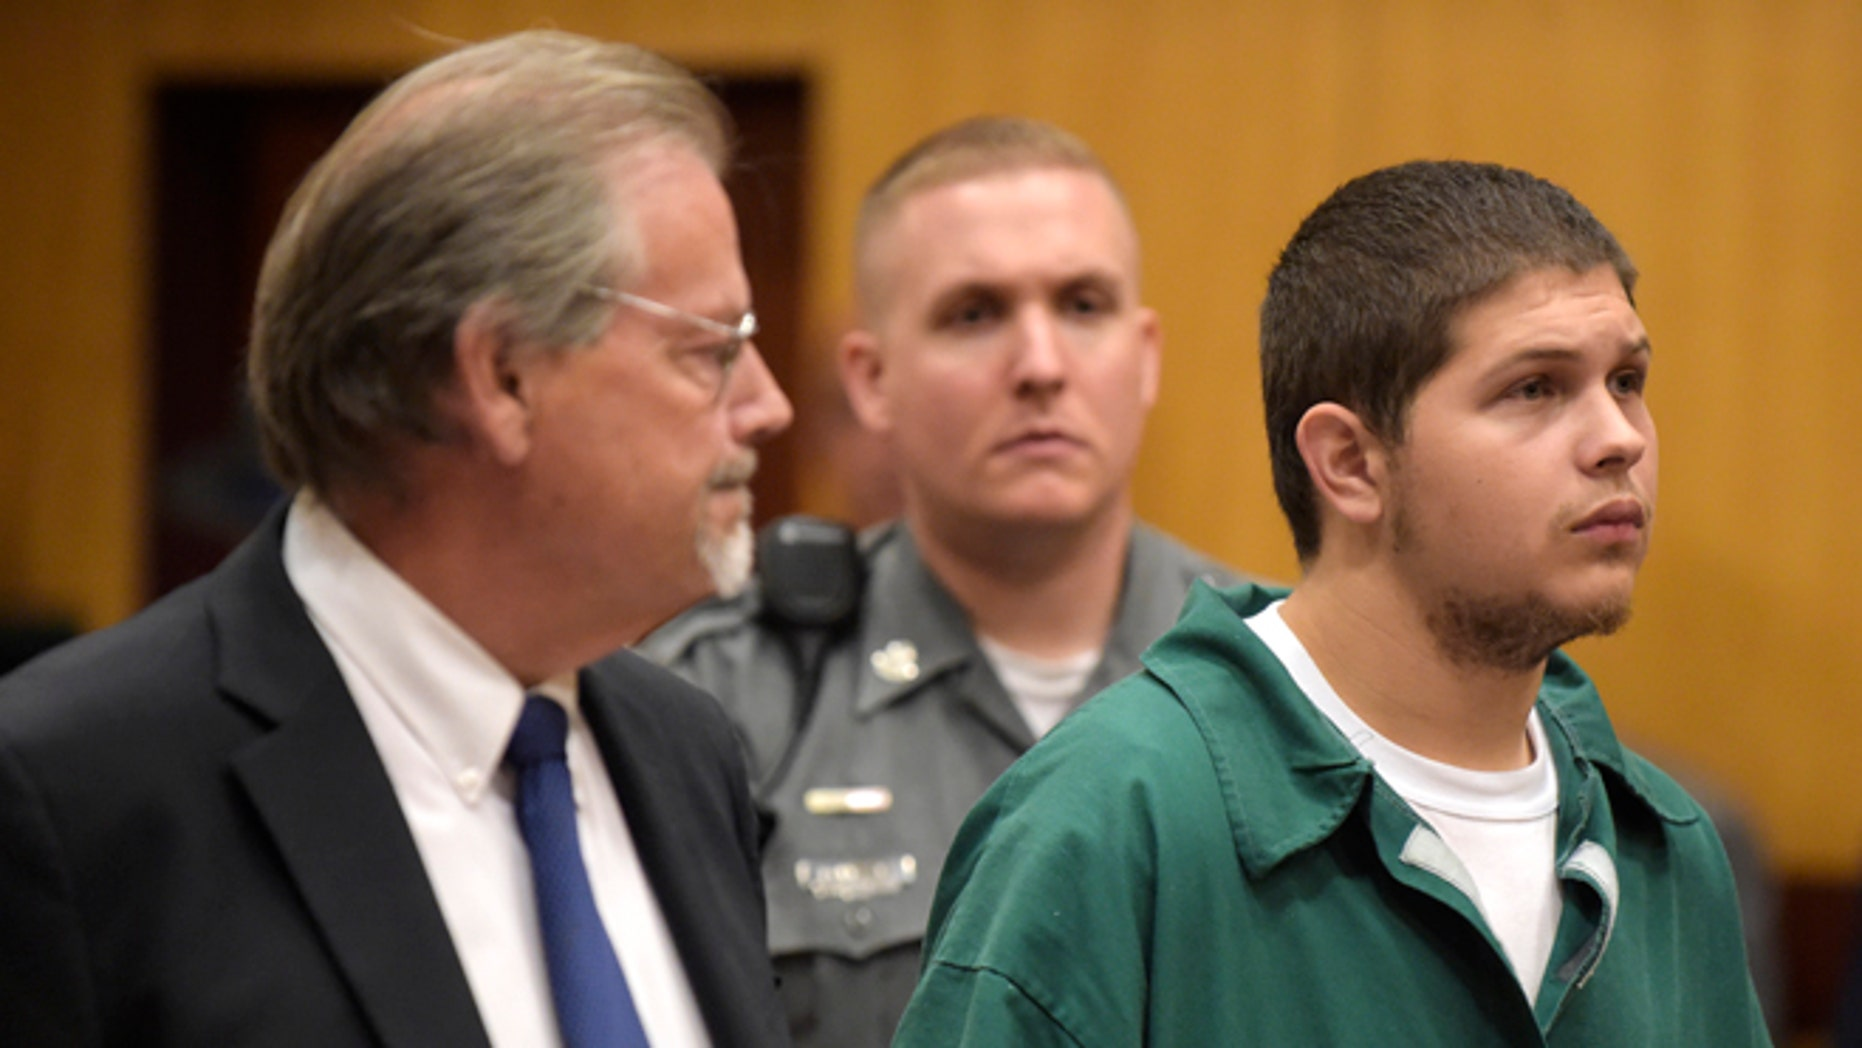 Tony Moreno, right, appears in Middletown Superior Court in Middletown, Conn., on Tuesday, July 21, 2015, with his lawyer, James McKay. Moreno's case has been continued by Judge David P. Gold until September 15. Moreno is charged with murder in the death of 7-month-old Aaden Moreno. Heis accused of throwing his infant son to his death off the Arrigoni Bridge and into the Connecticut River.  (Patrick Raycraft/The Courant via AP, Pool)